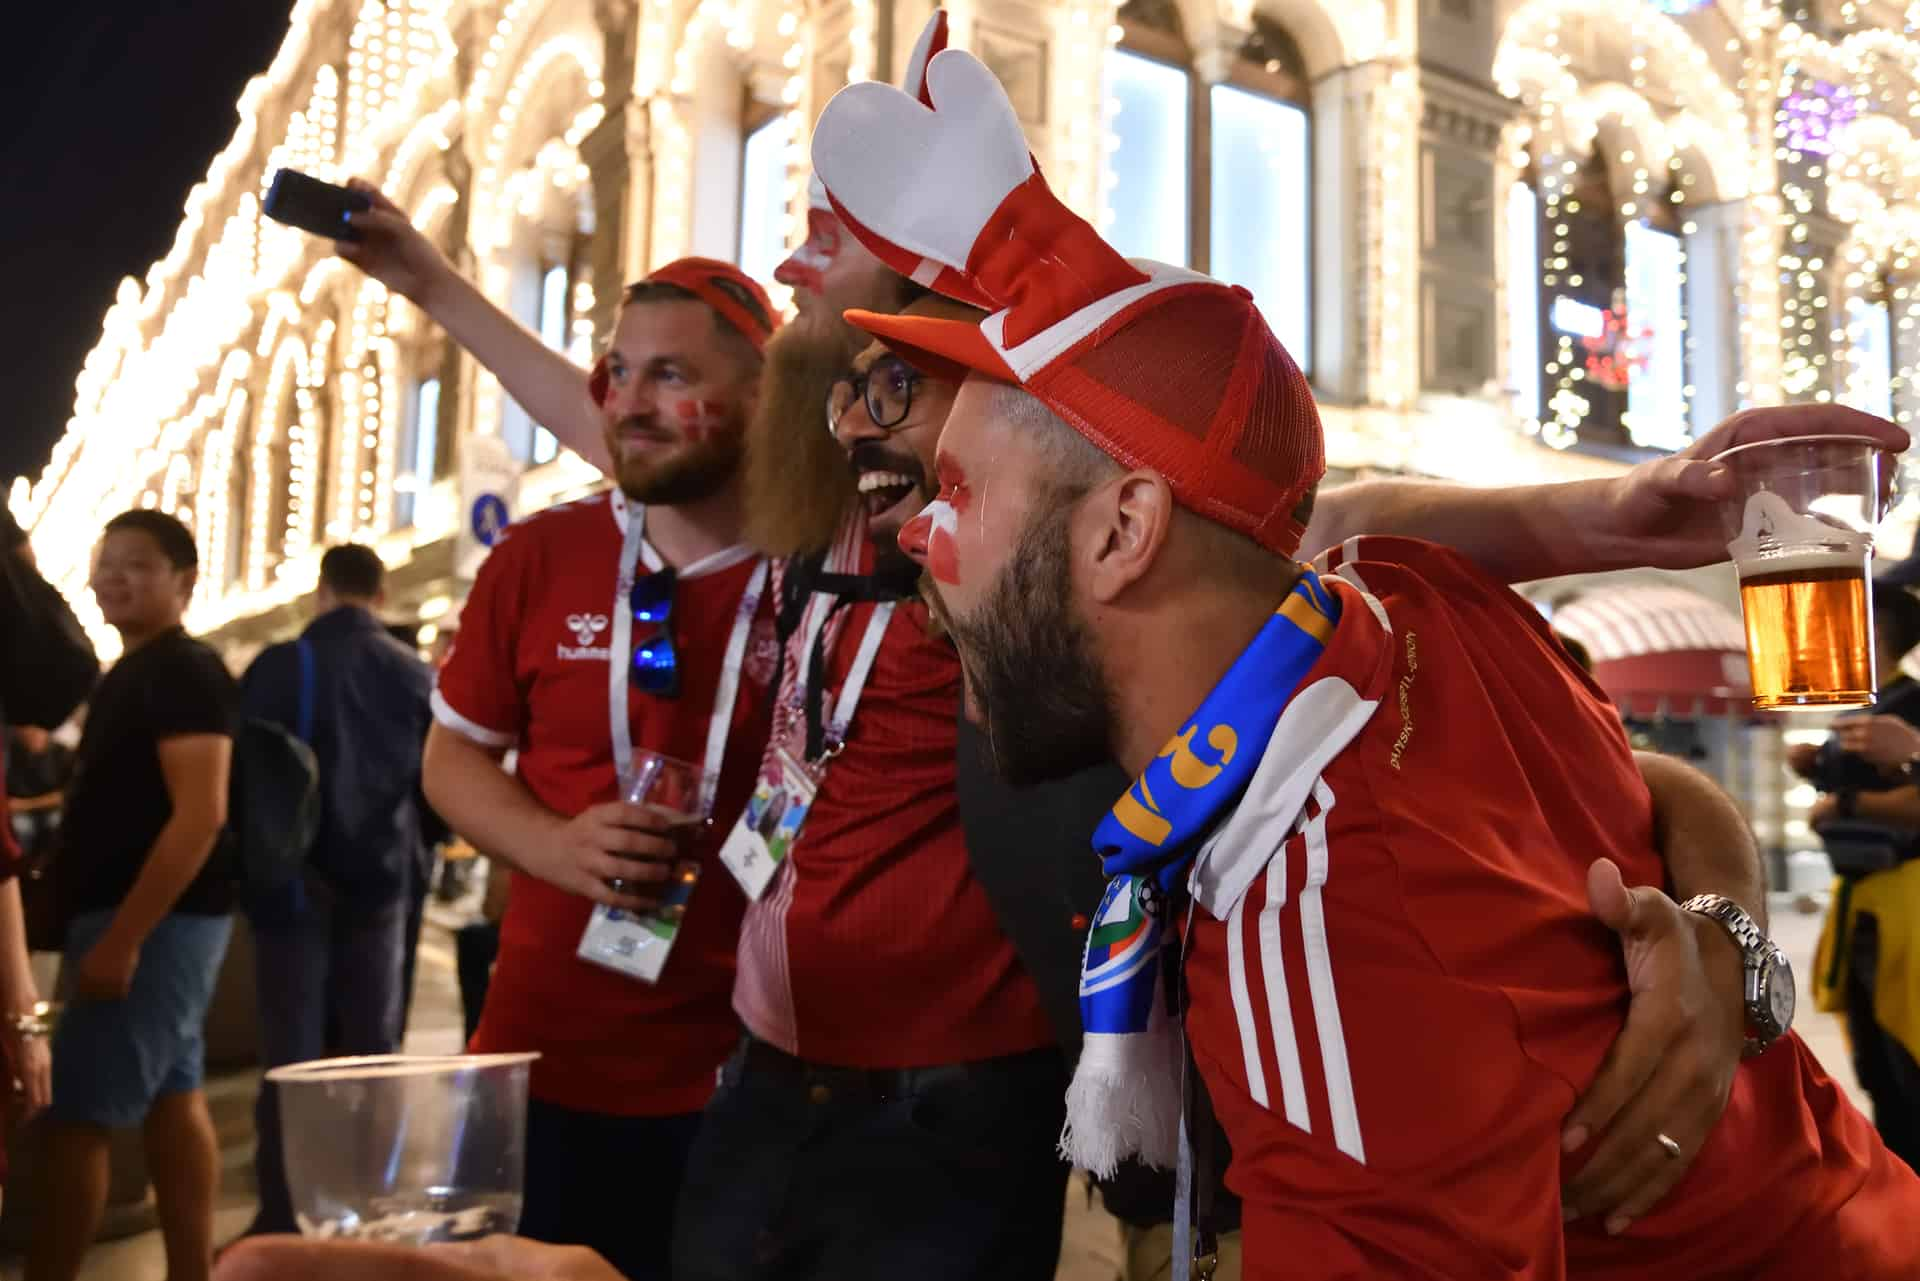 World Cup 2018, football fans on the streets of Moscow